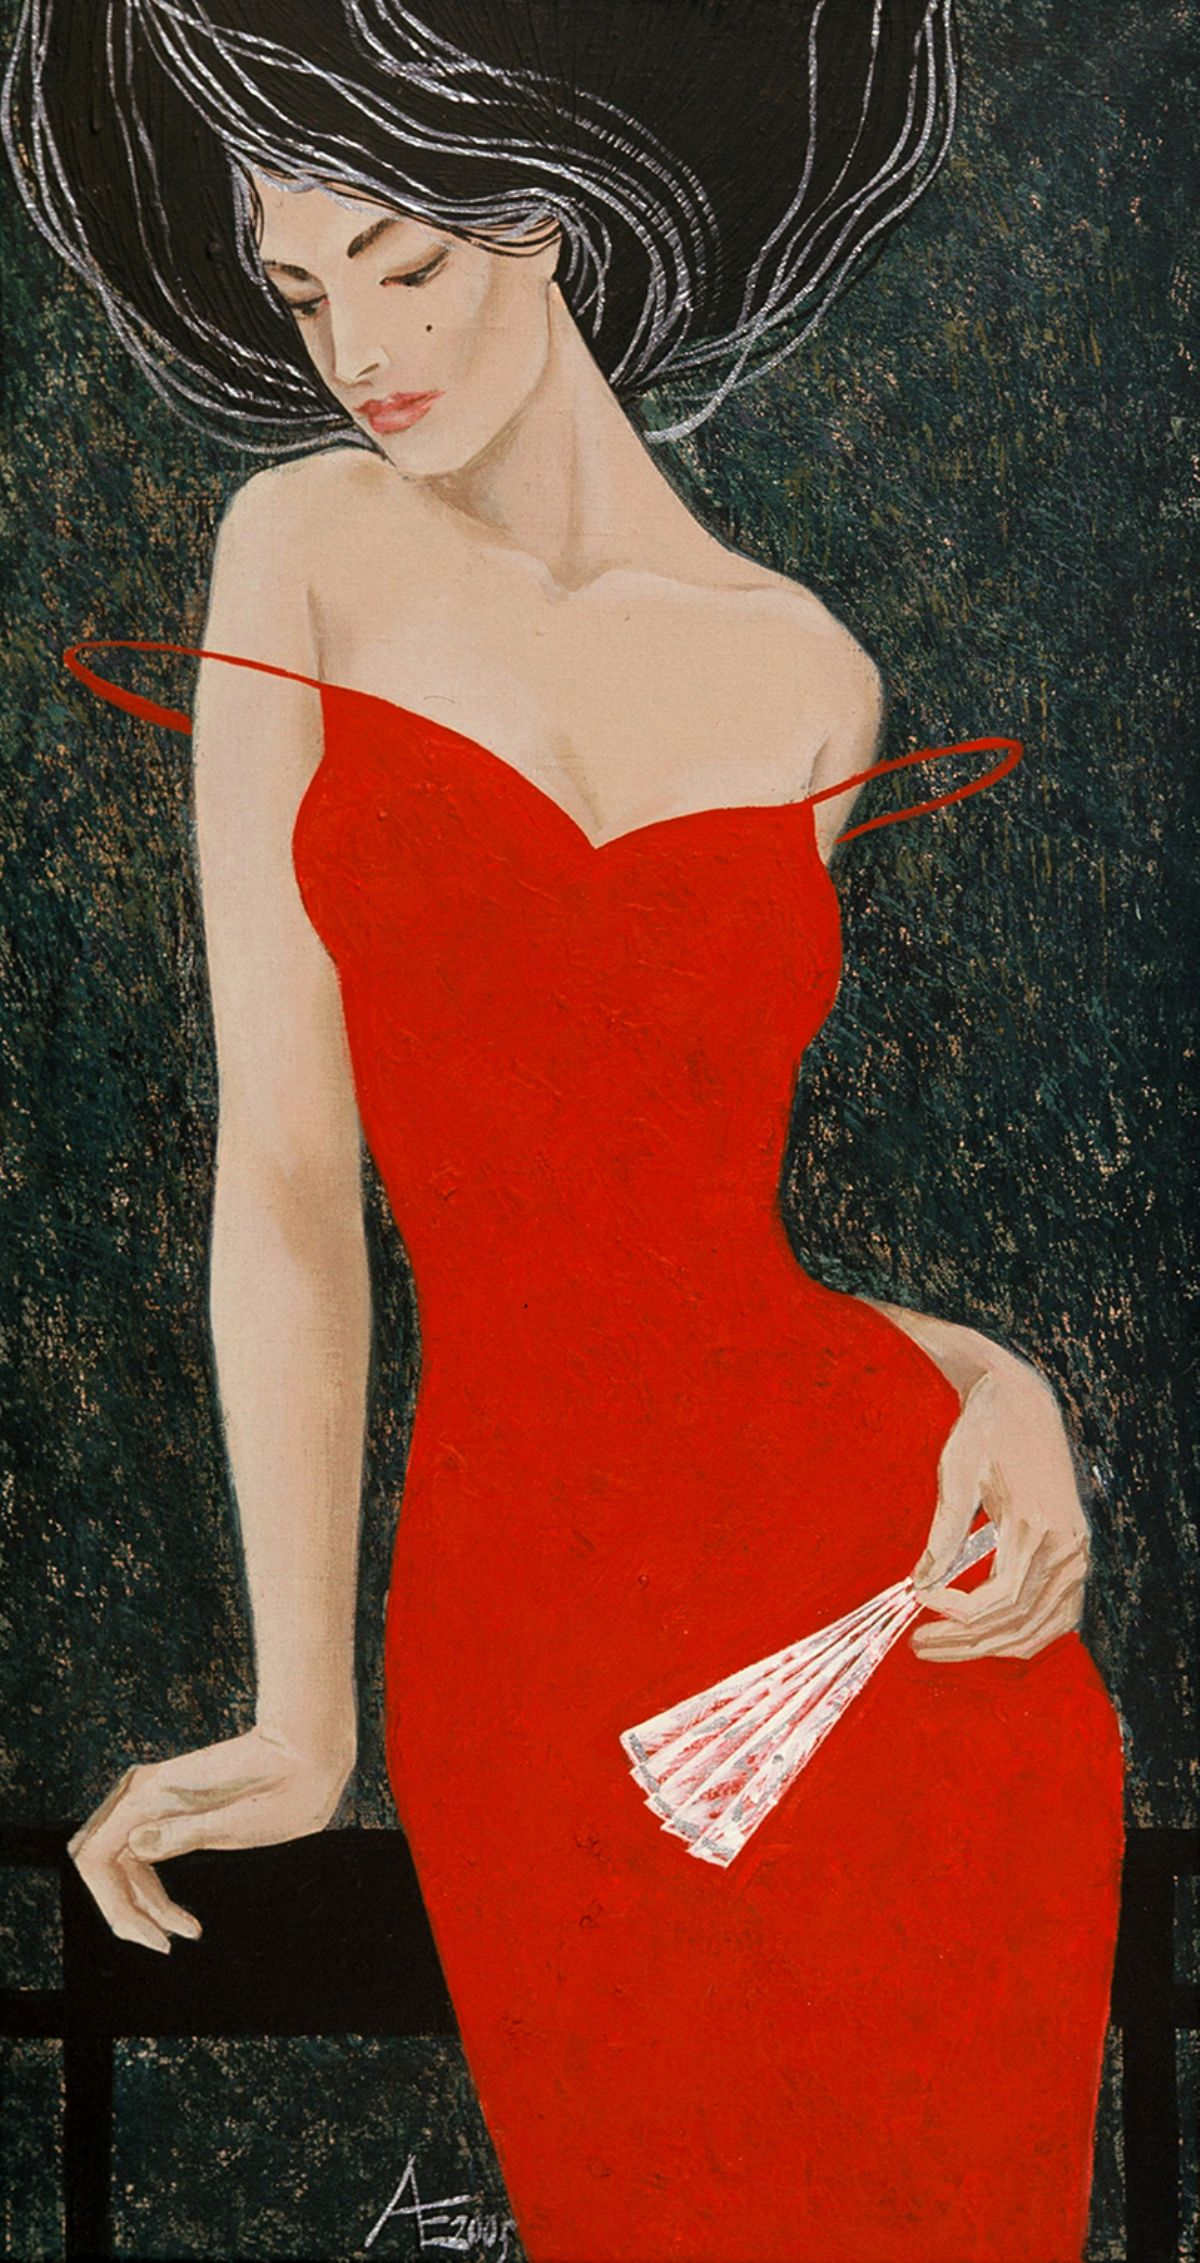 Anticipation of Love artwork by Ekaterina Abramova - art listed for sale on Artplode